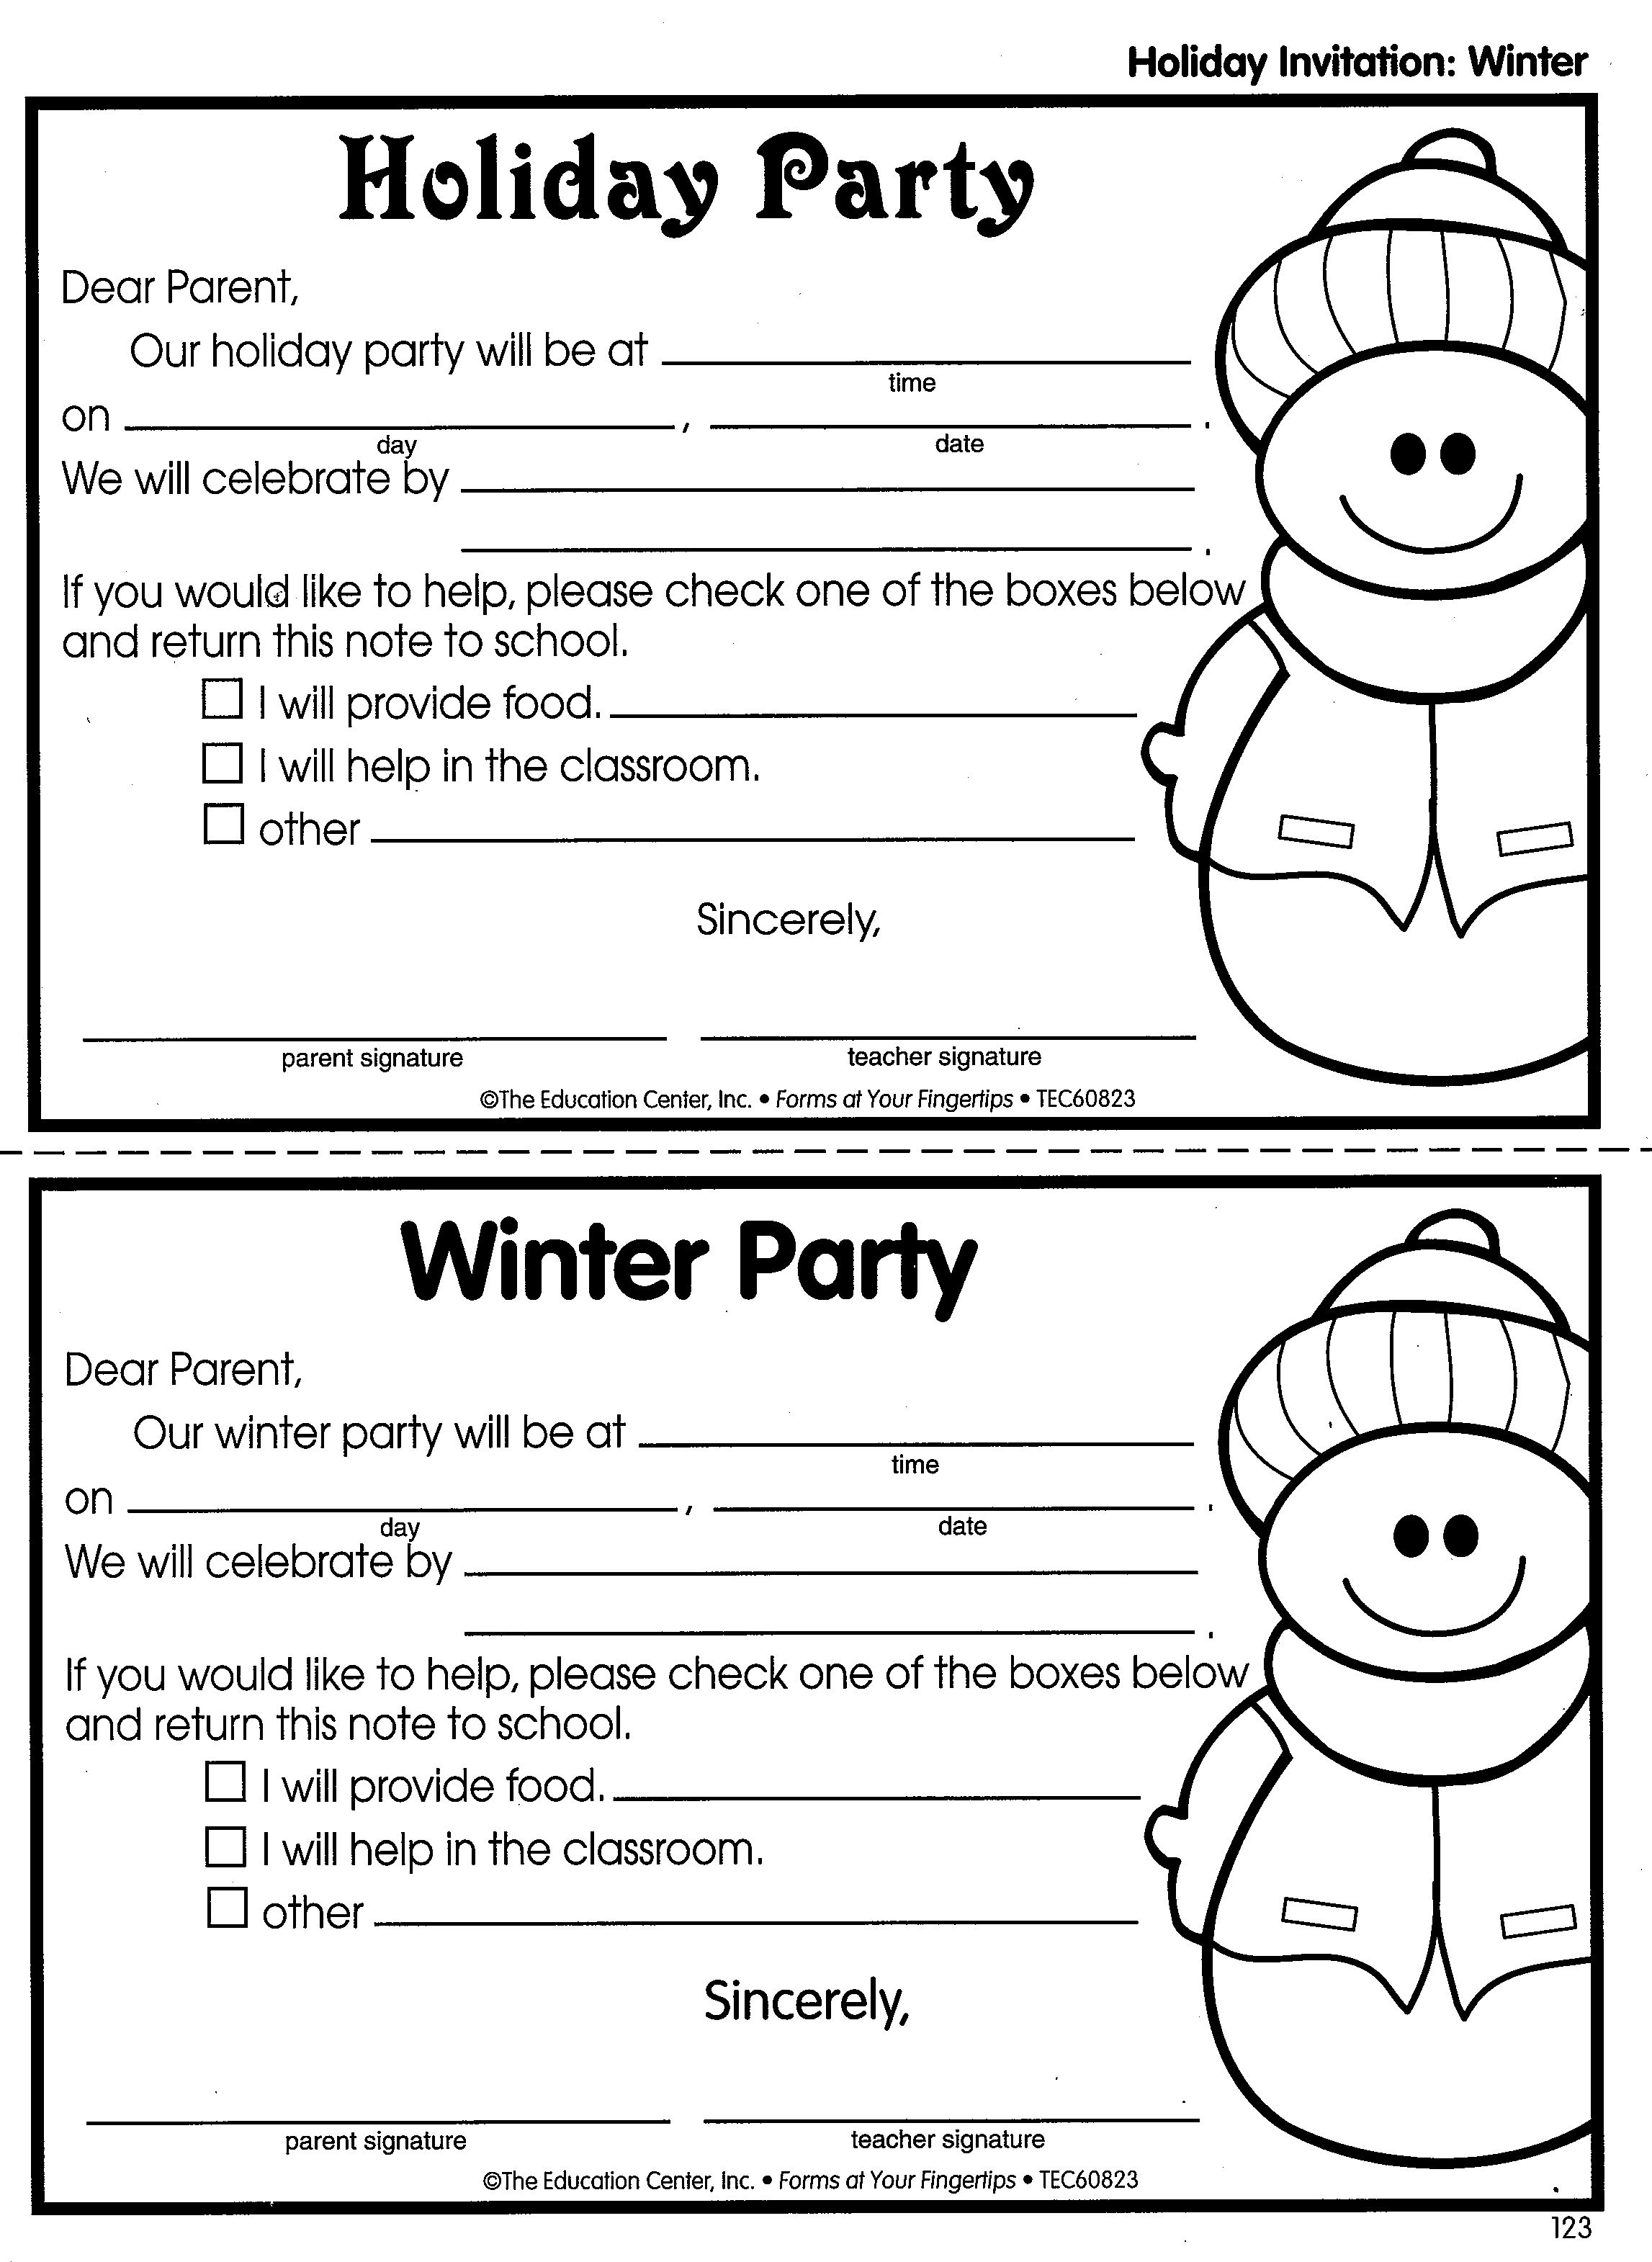 Holiday Party, Winter Party classroom invitations (With